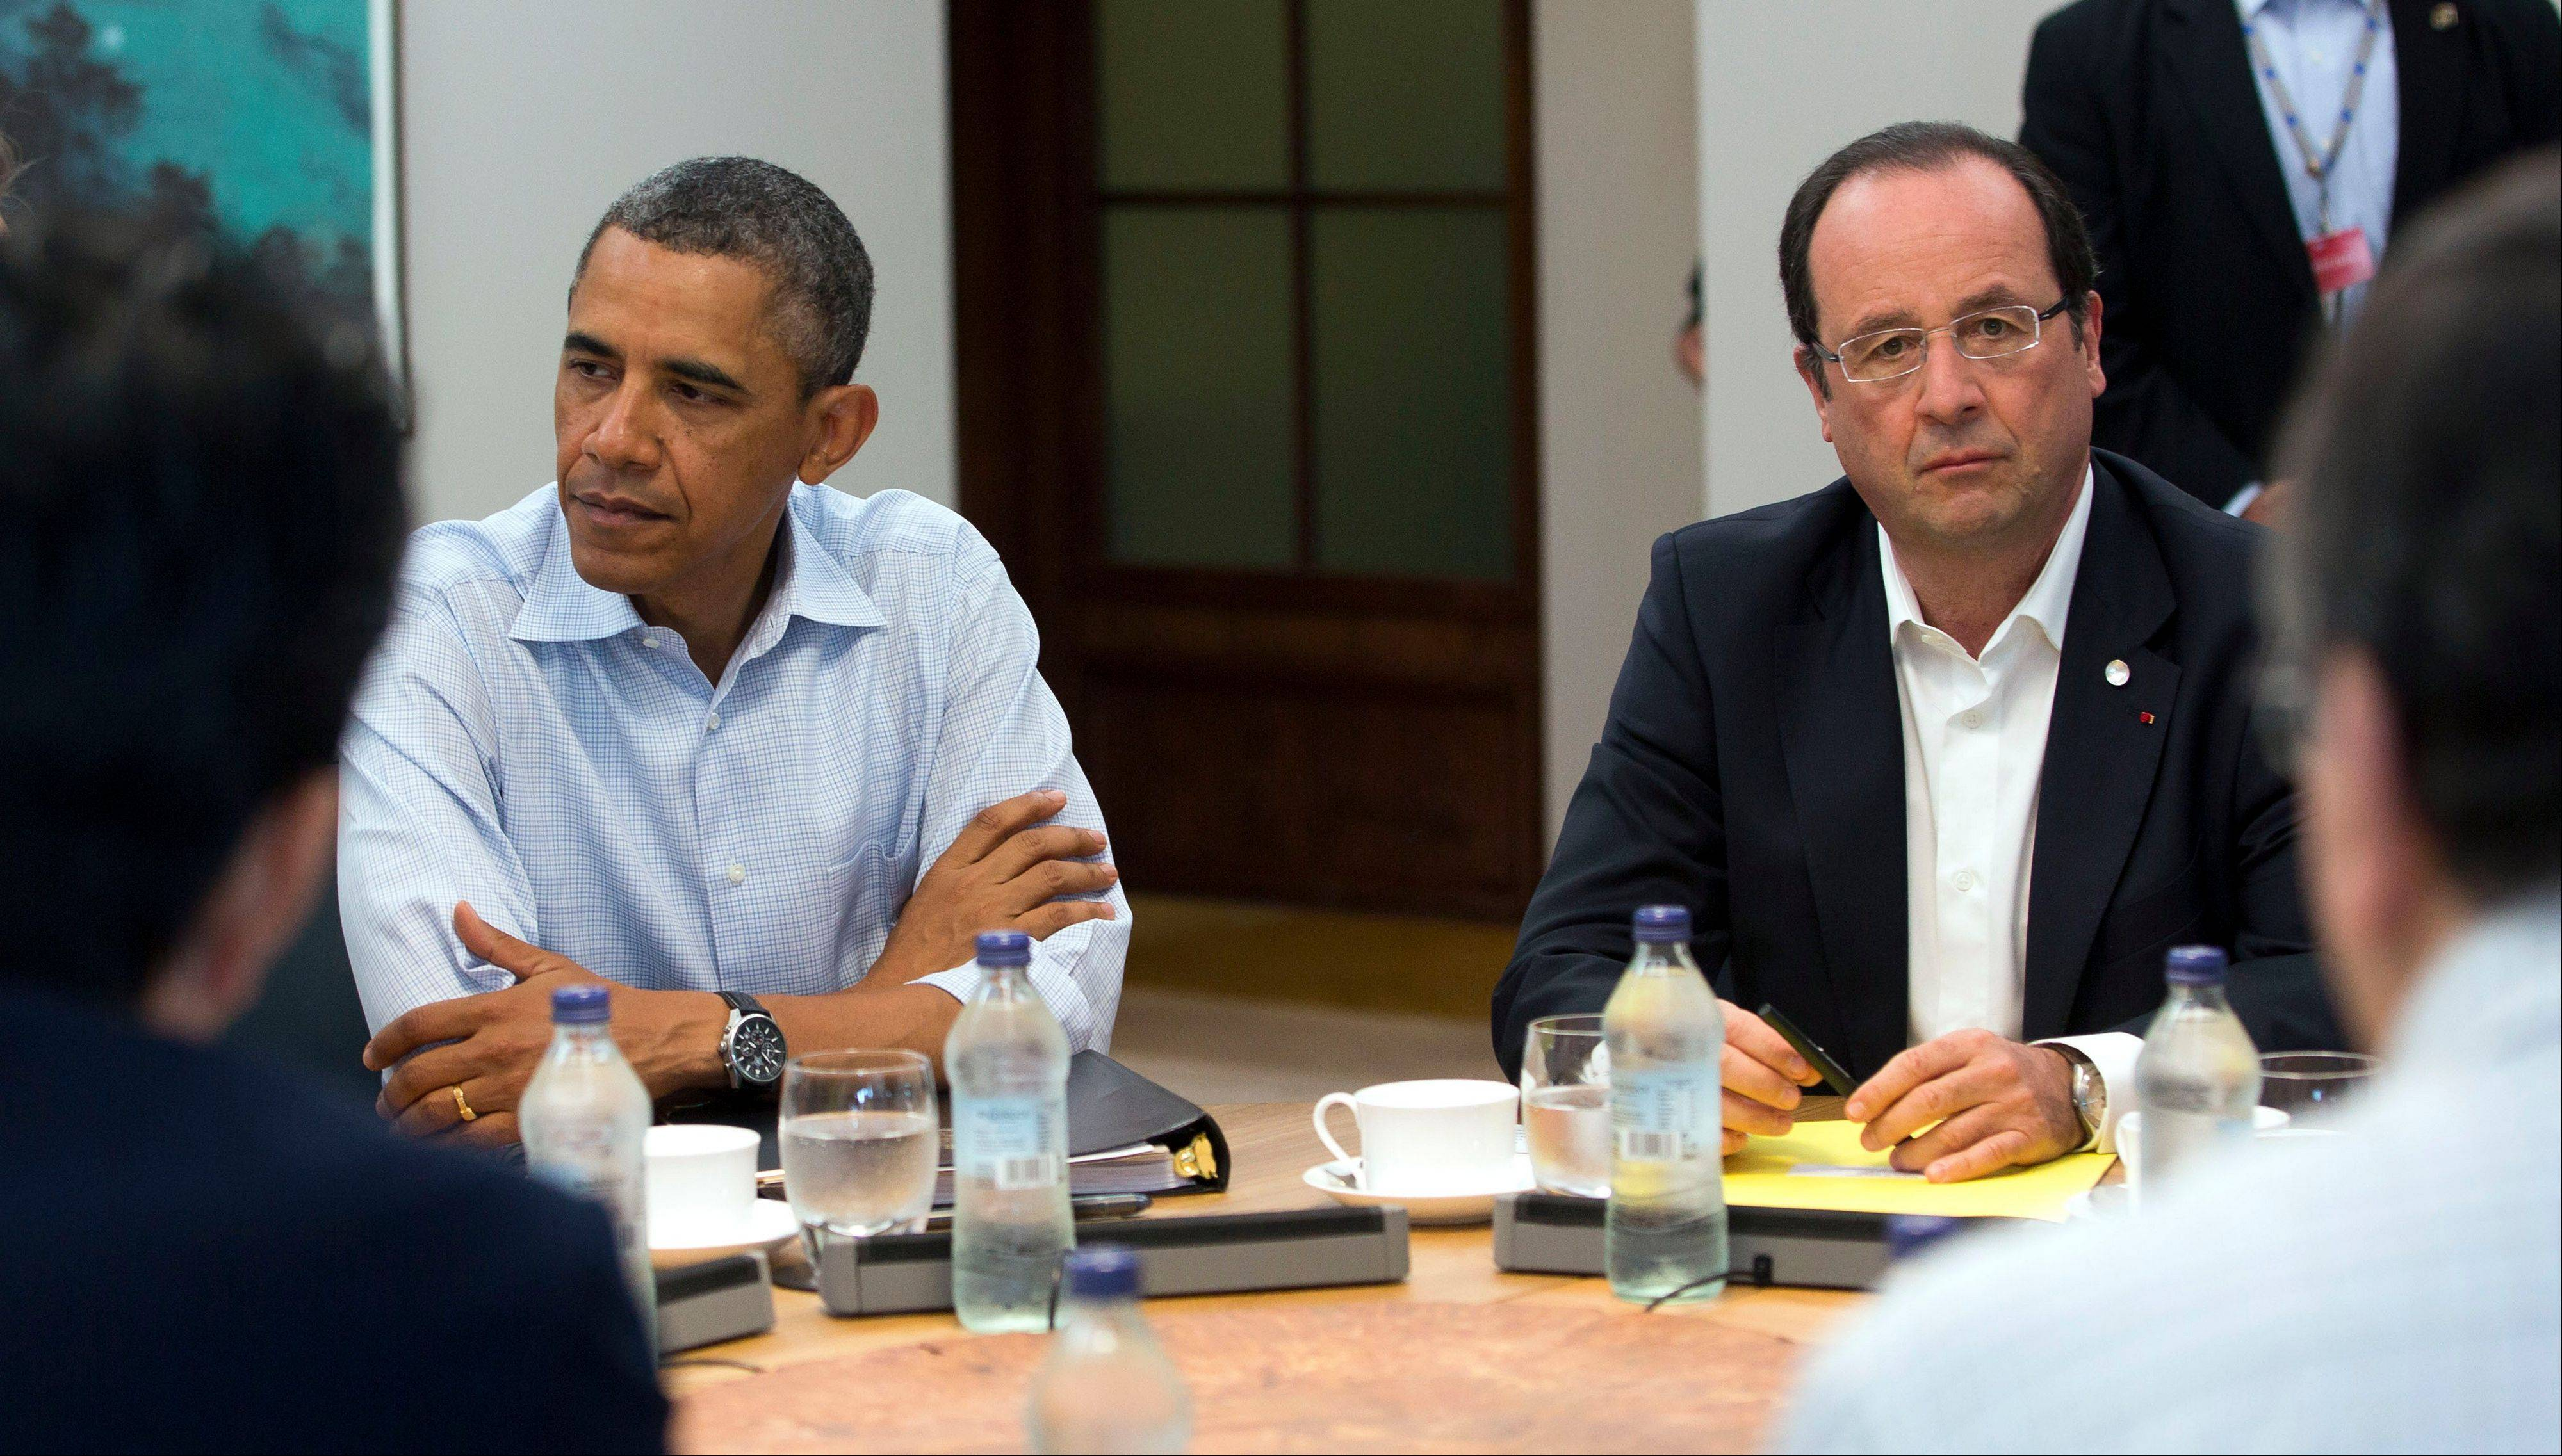 President Barack Obama and French President Francois Hollande attend a round table meeting of G-8 member countries at the G-8 Summit at the Lough Erne golf resort in Enniskillen, Northern Ireland, Tuesday.